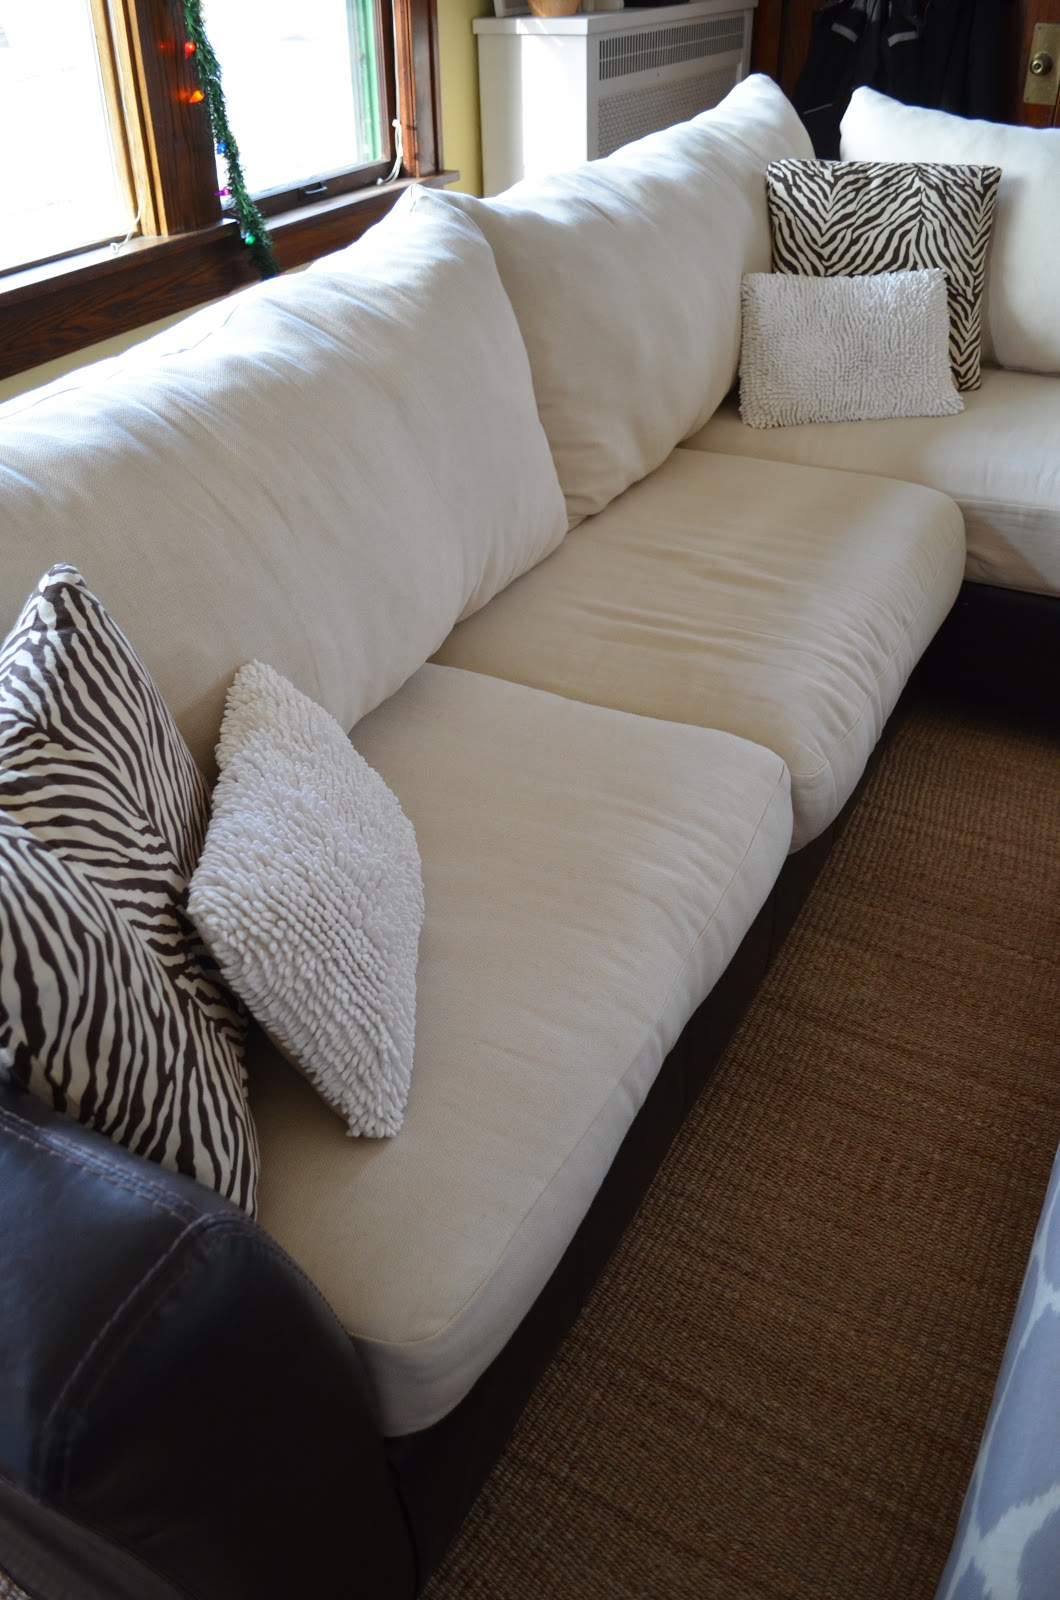 diy sofa cushions images galleries with a bite. Black Bedroom Furniture Sets. Home Design Ideas